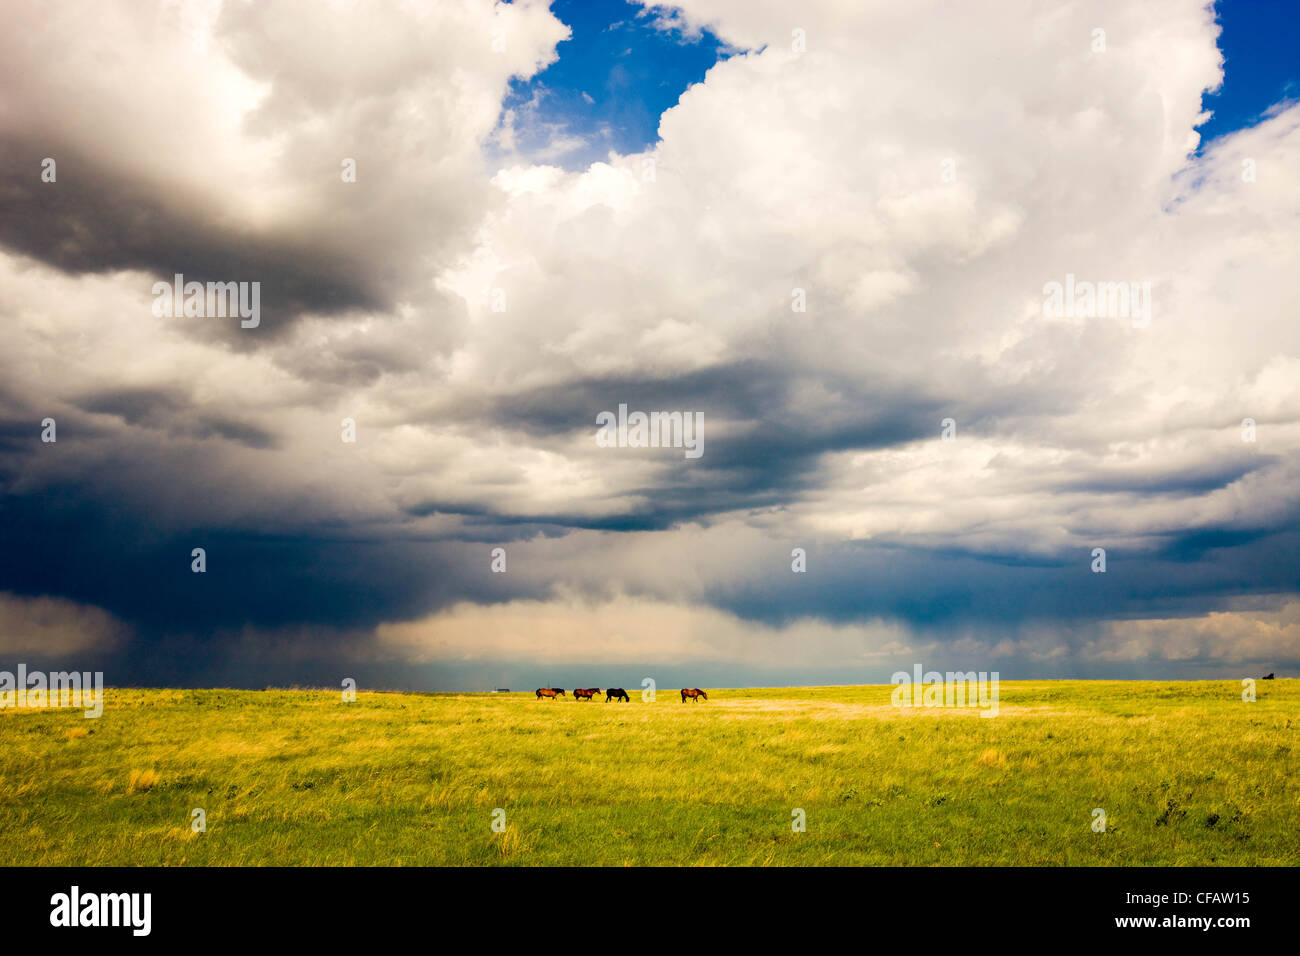 Horses grazing with storm clouds overhead near Brooks, Alberta, Canada. Stock Photo